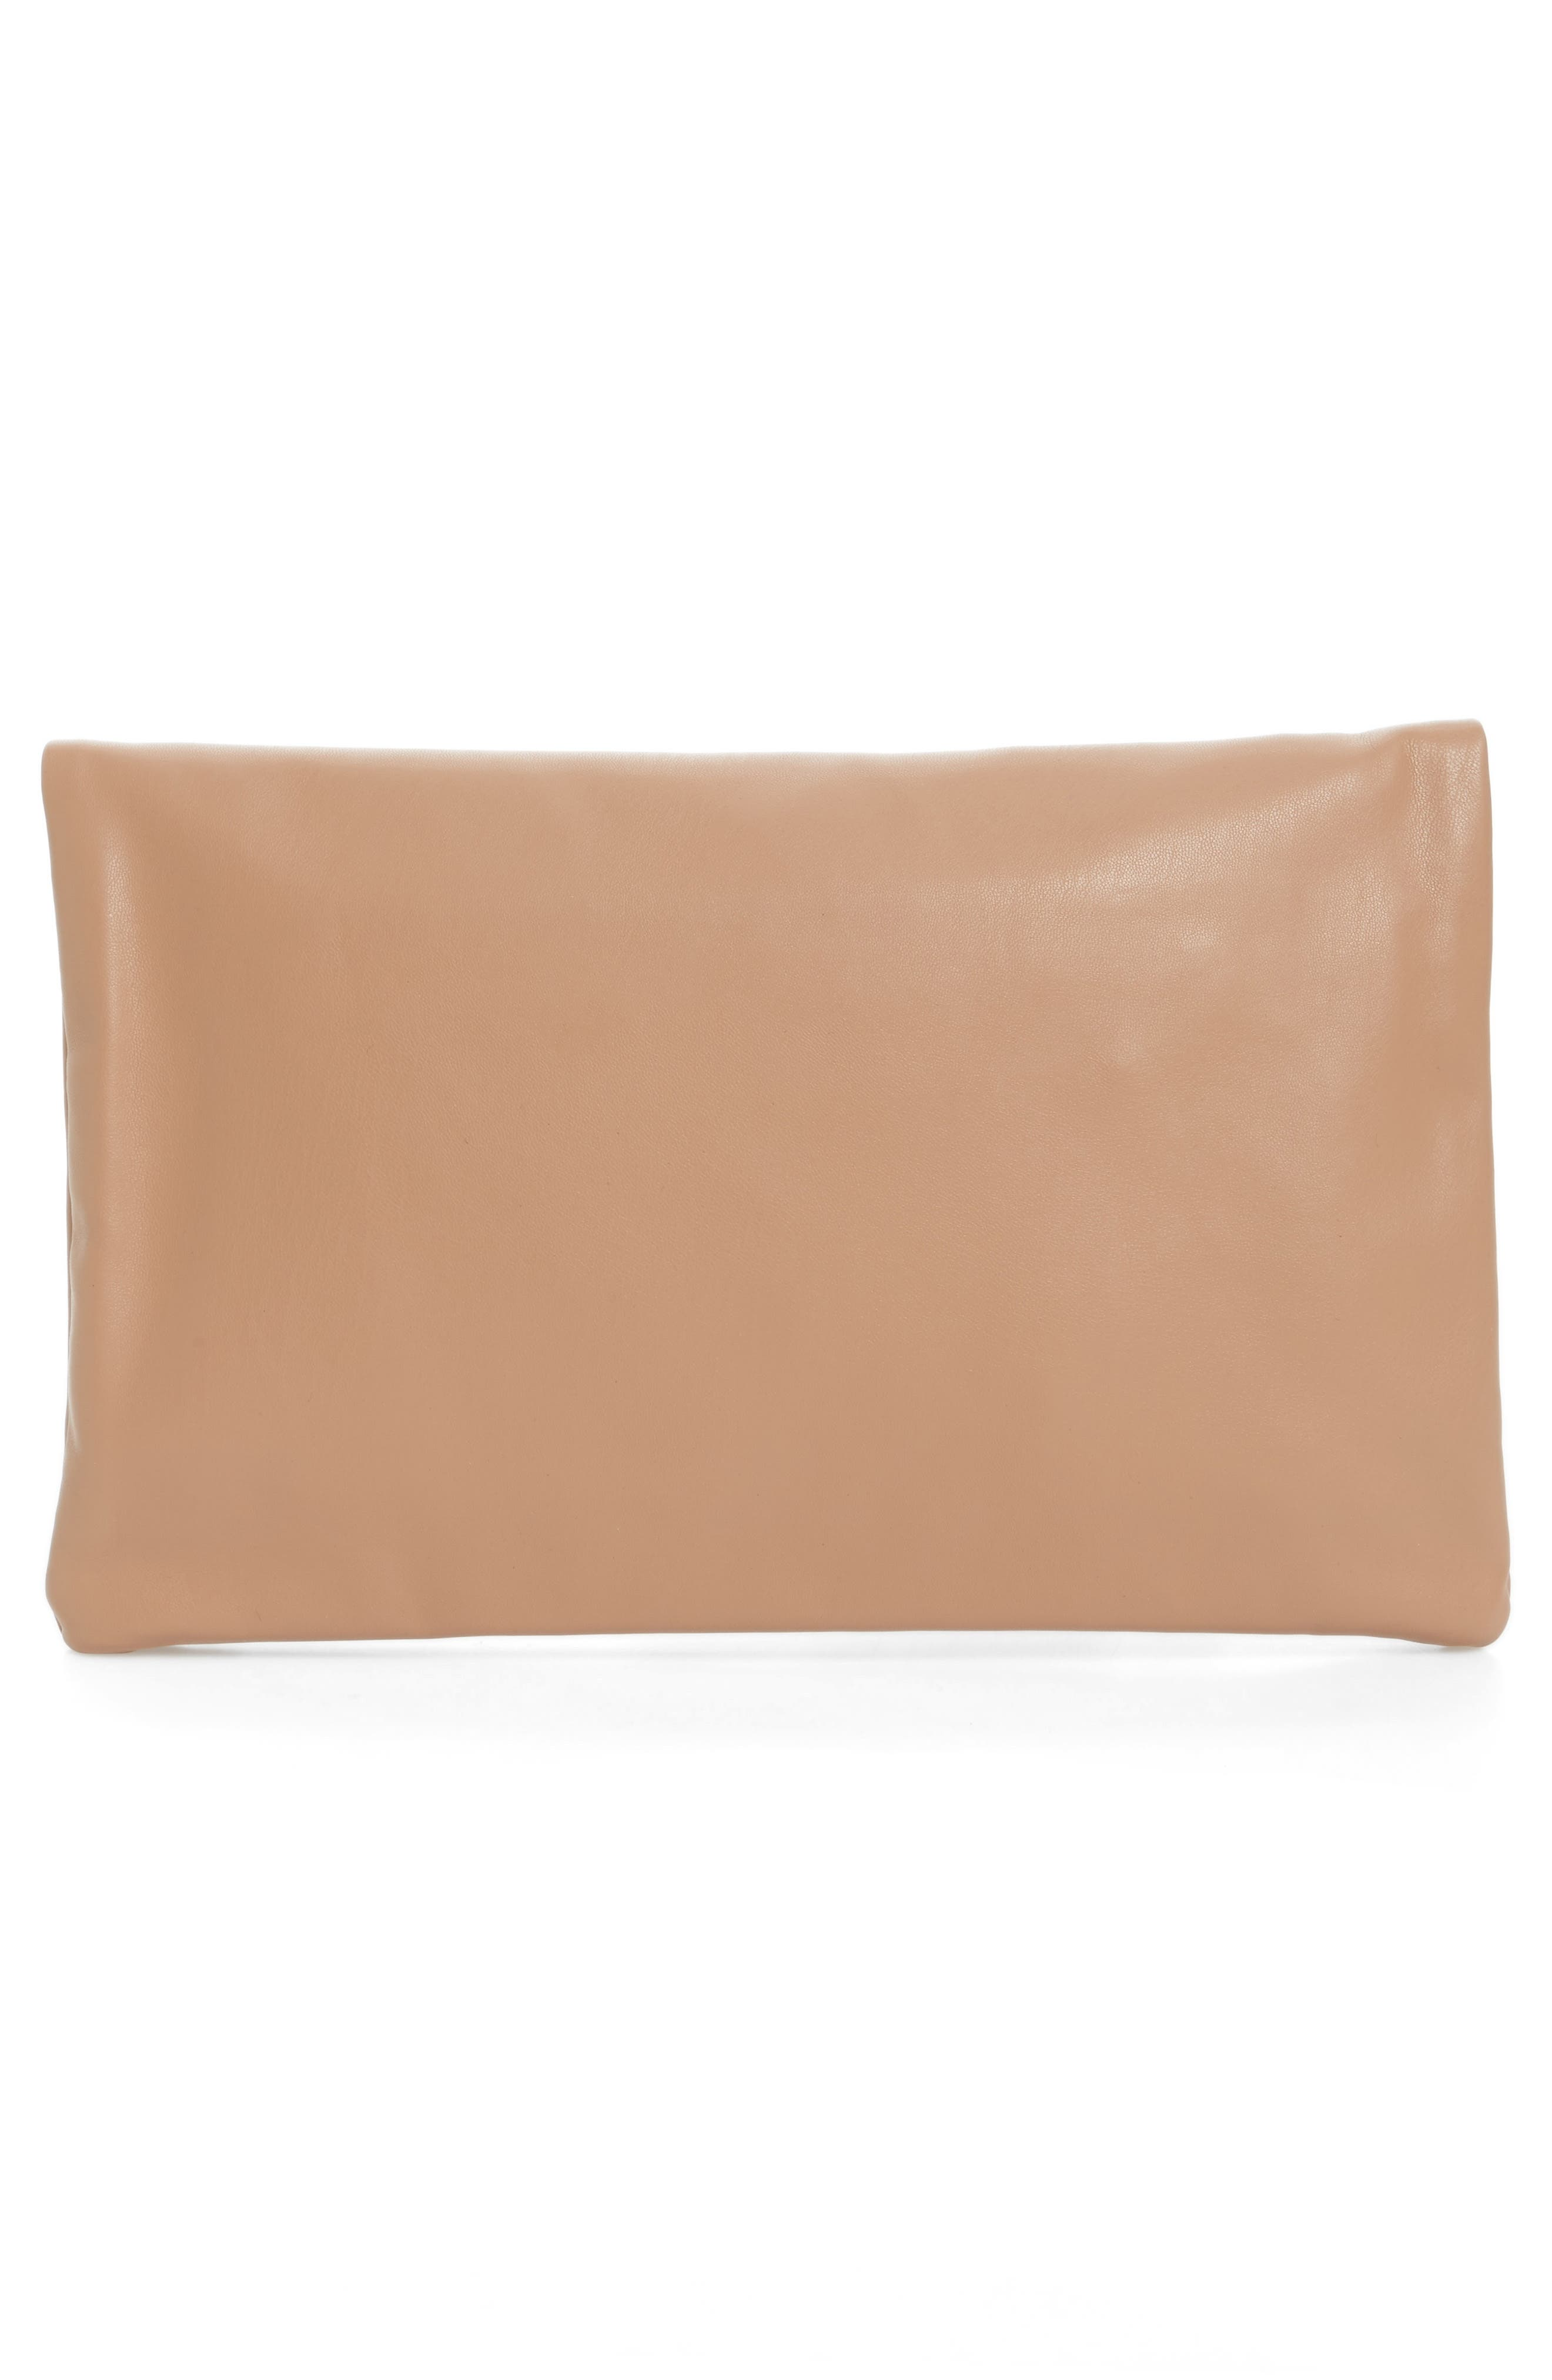 Melrose Faux Leather Clutch,                             Alternate thumbnail 9, color,